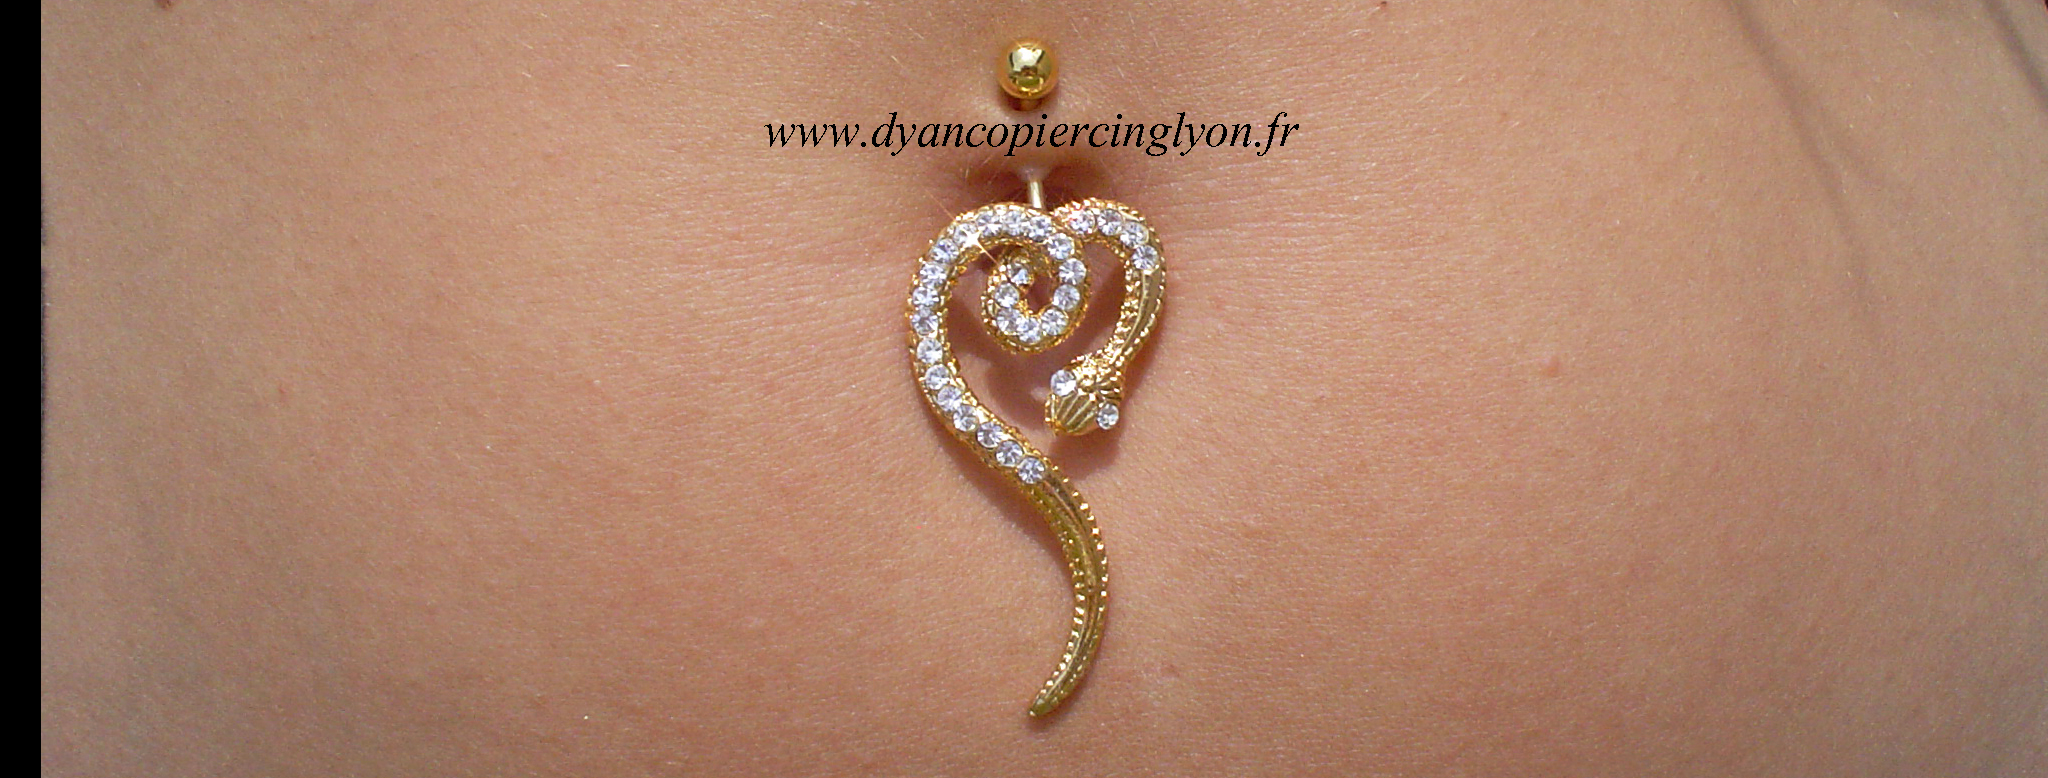 Piercing_nombril_serpent_anodisé_or